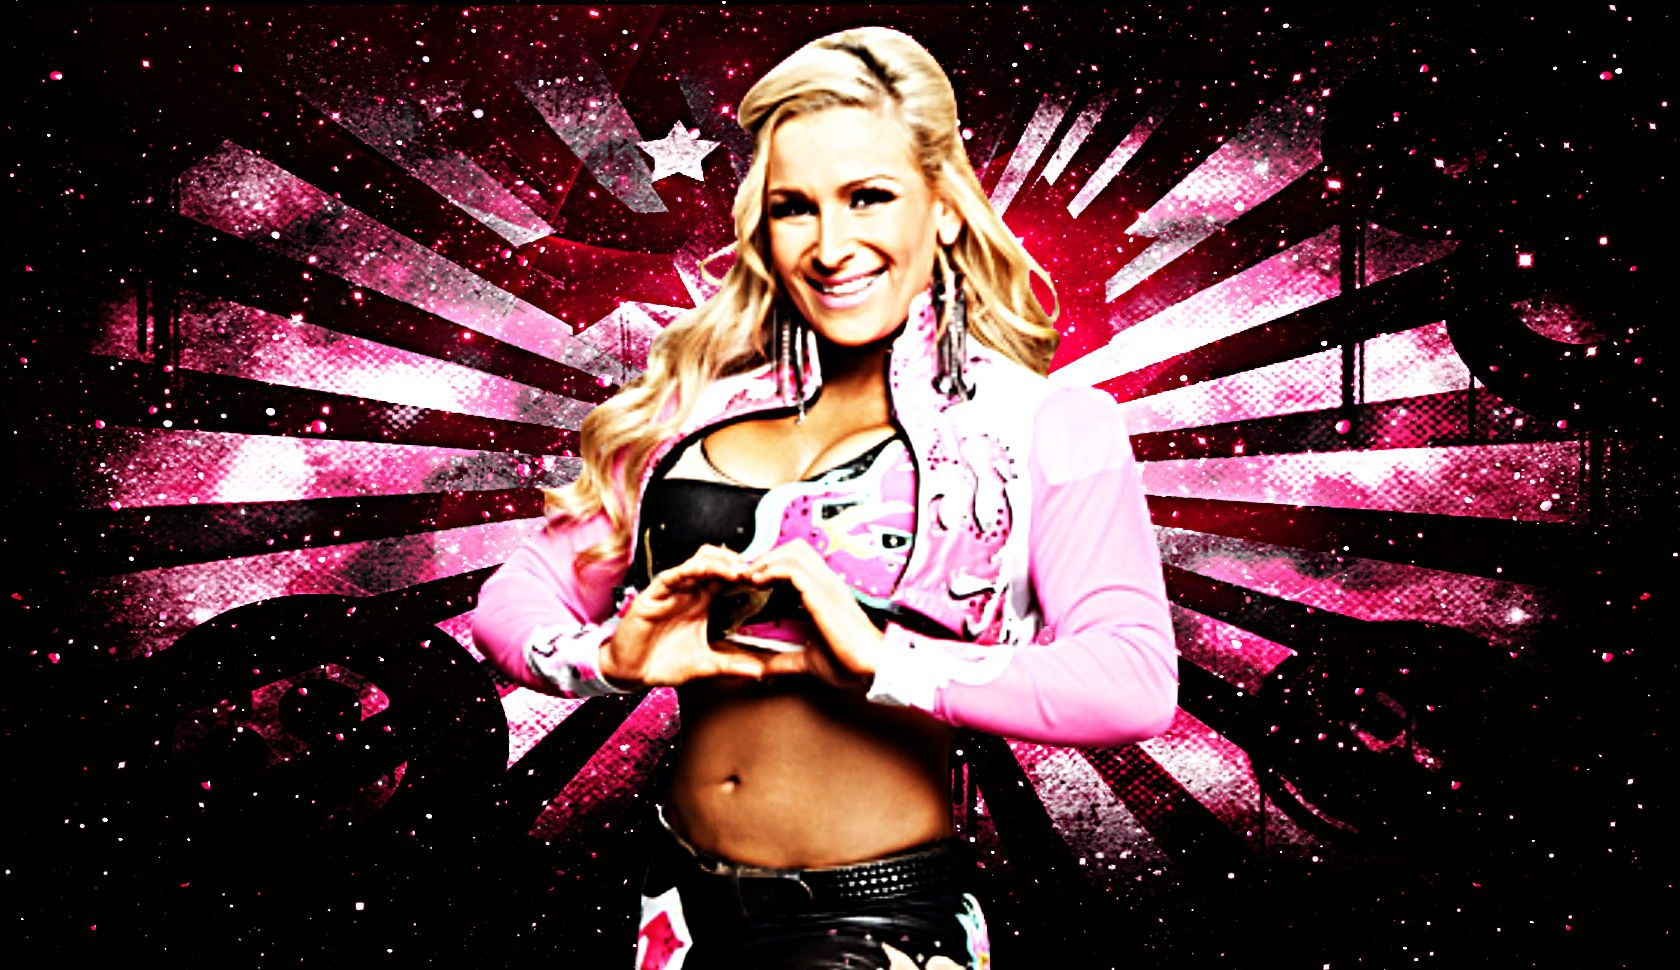 Wwe wallpapers natalya love wallpaper natalya wwe - Wwe divas wallpapers ...